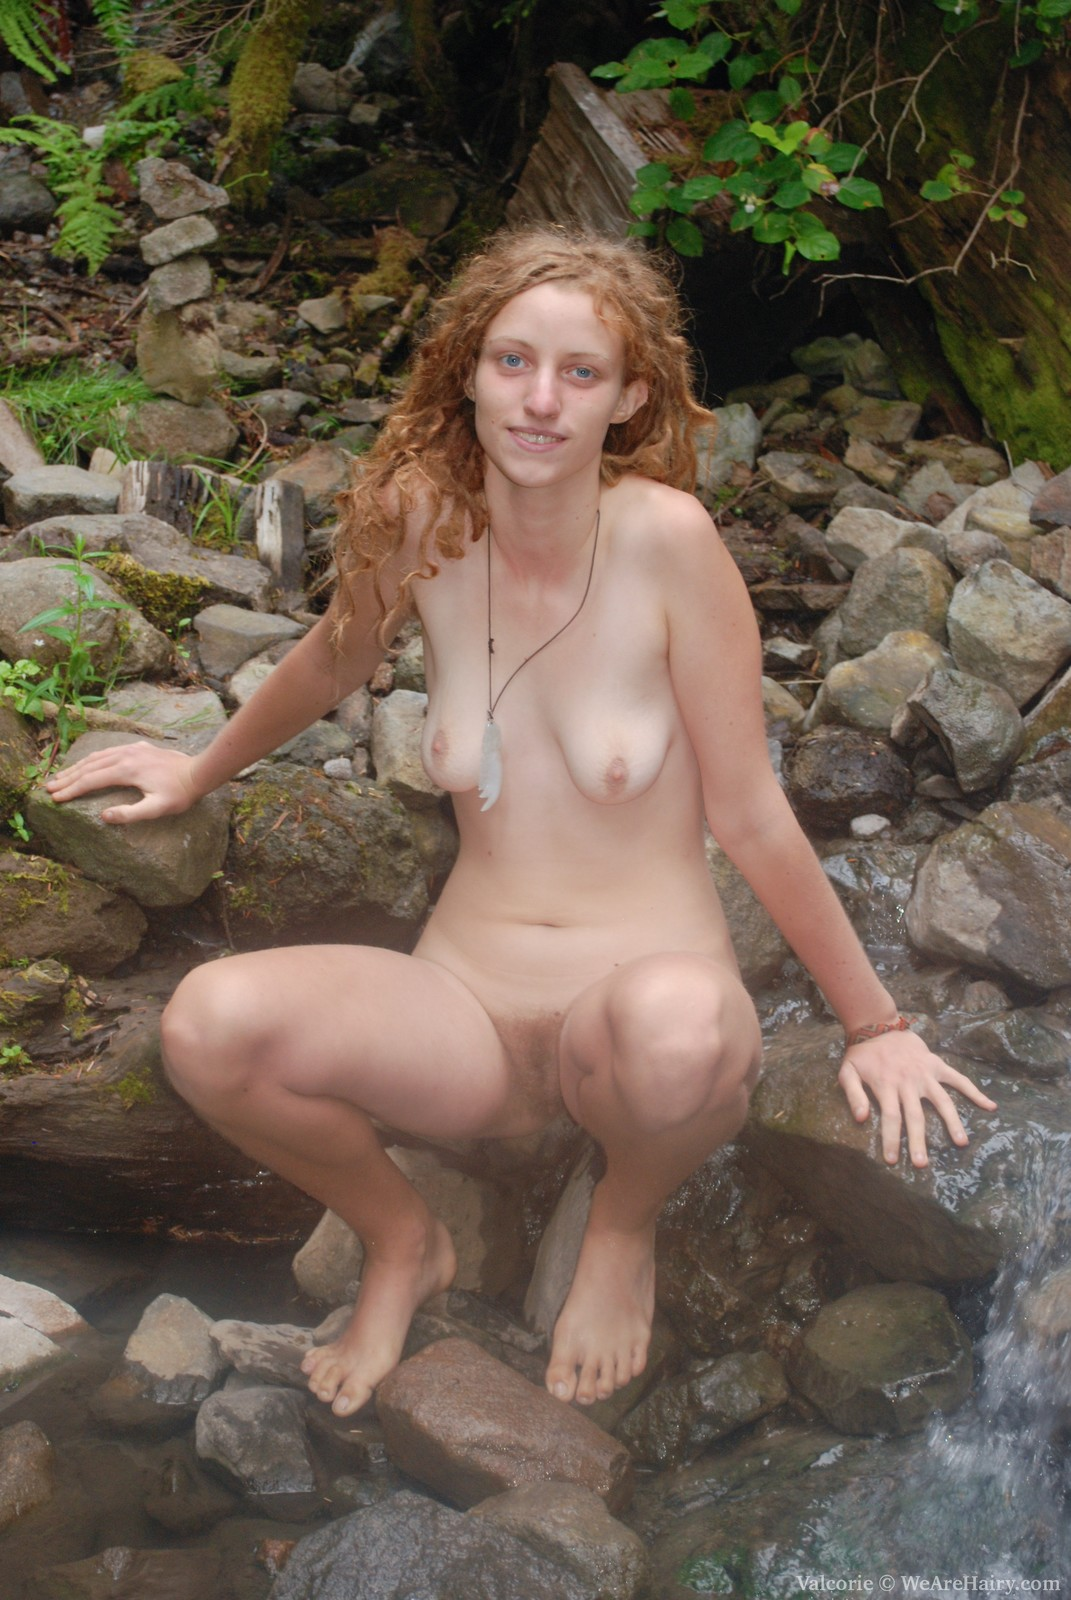 Pictures hairy nudist natural, muslem girle nude sex photos